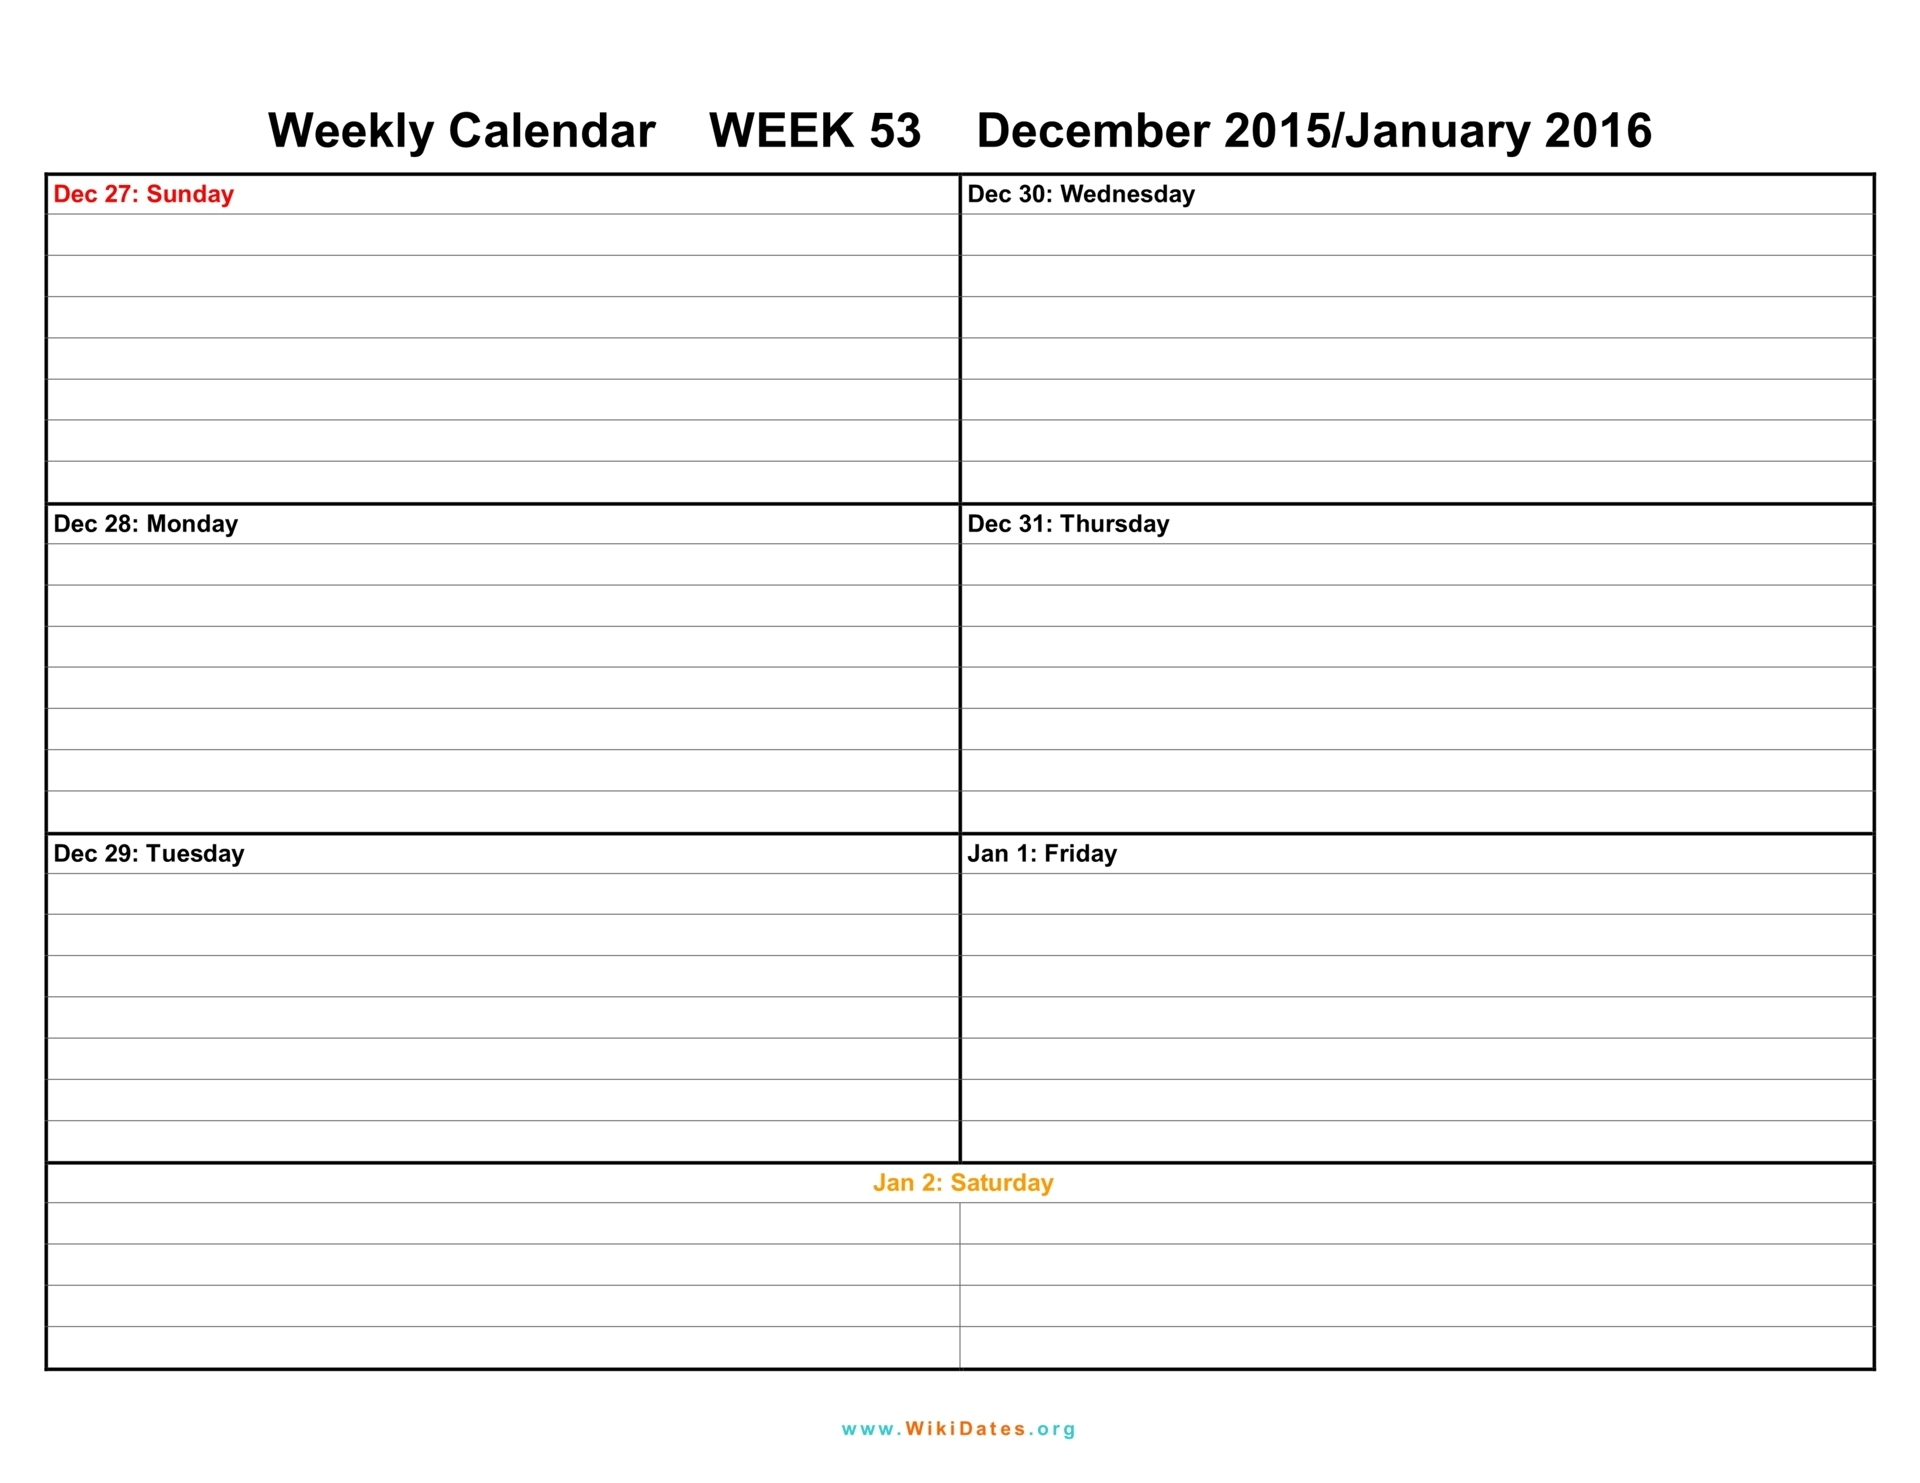 Week Schedule E Weekly For Pdf Version Schedules On One Page Agenda intended for 6 Week Work Schedule Template